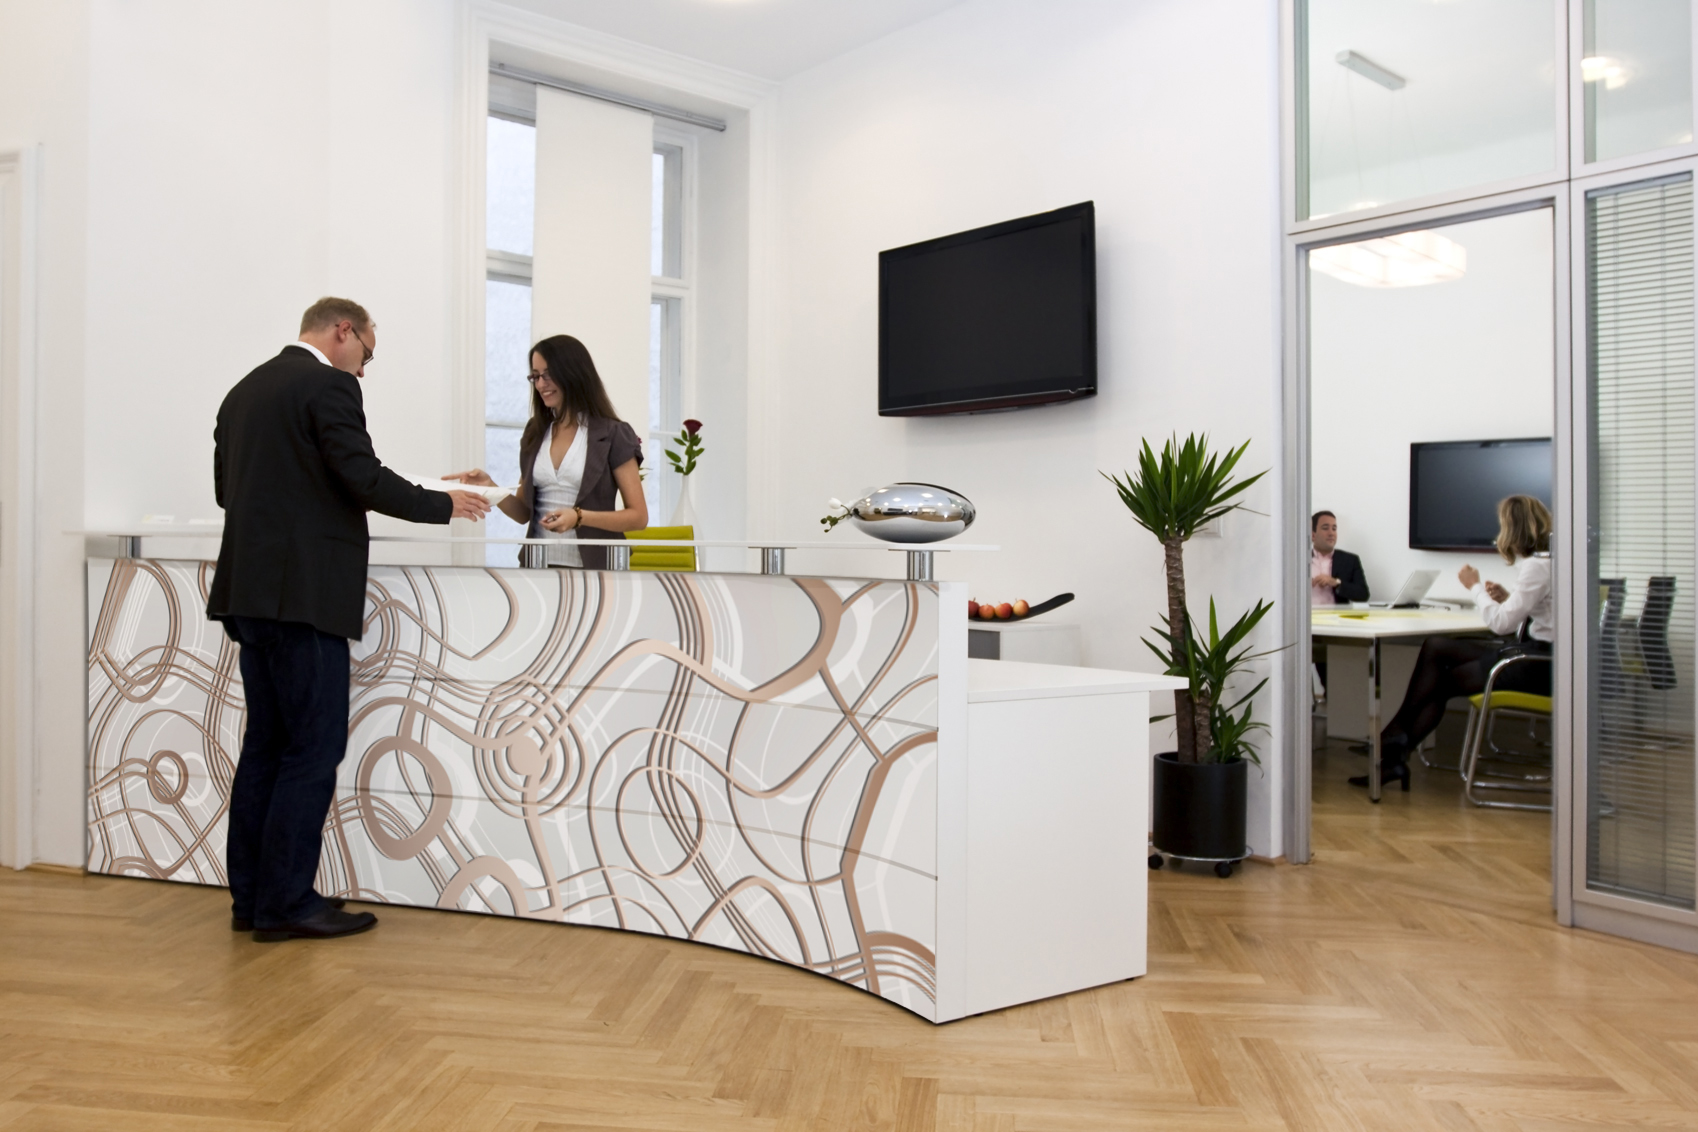 How to double your front desk efficiency?